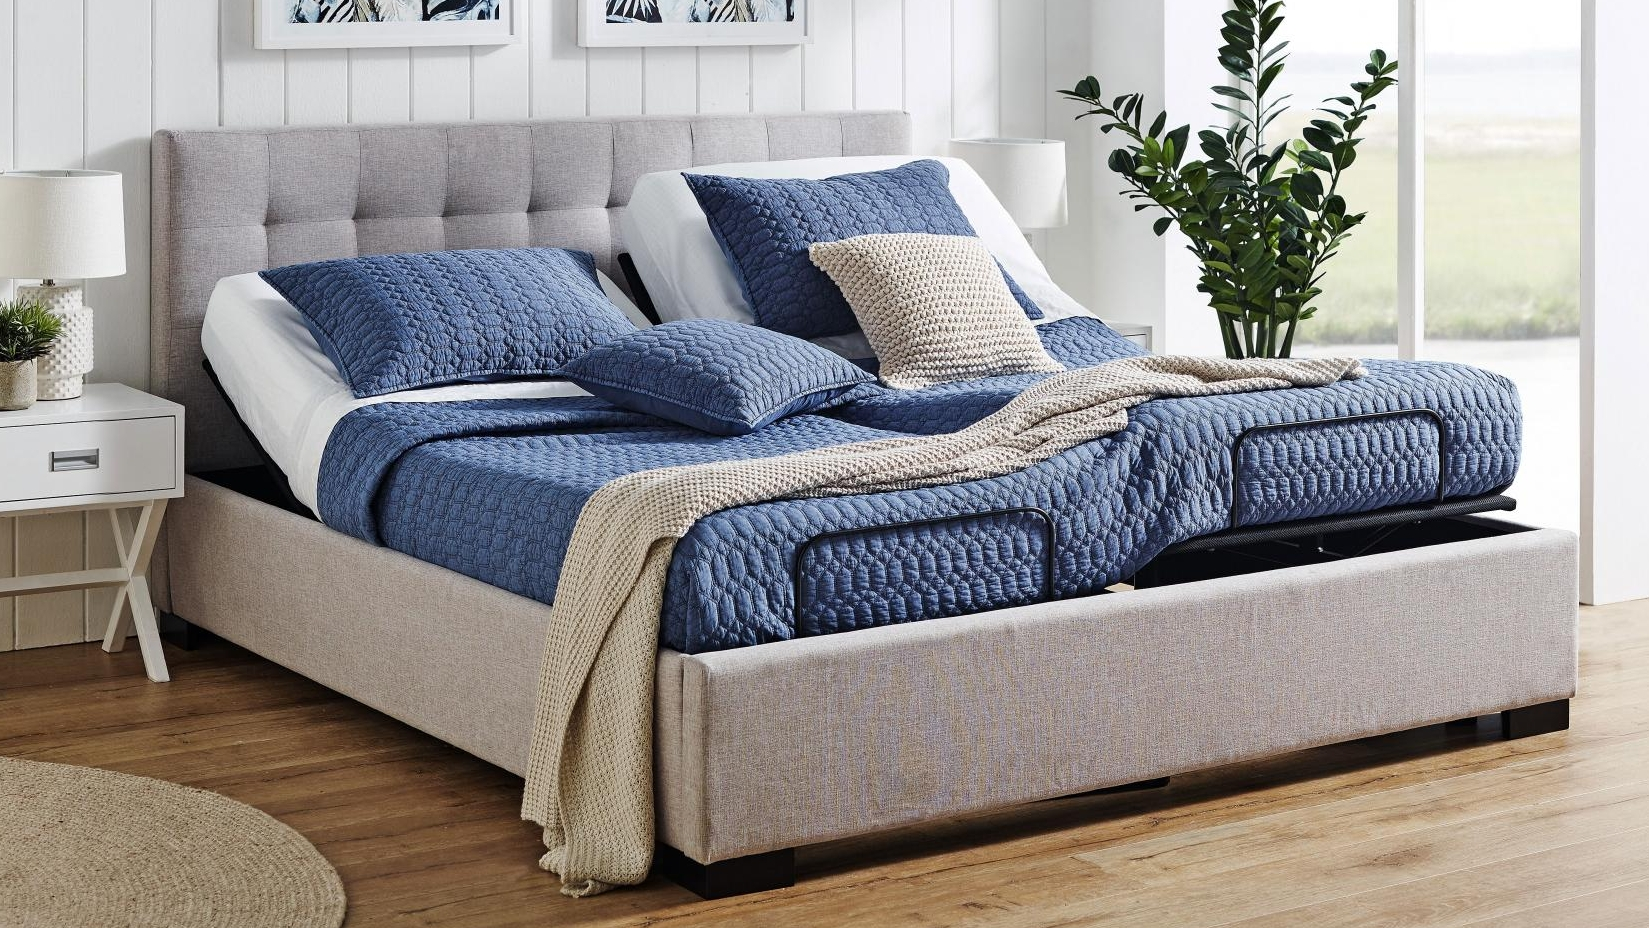 Buy Relax Adjustable Bed Frame | Harvey Norman AU